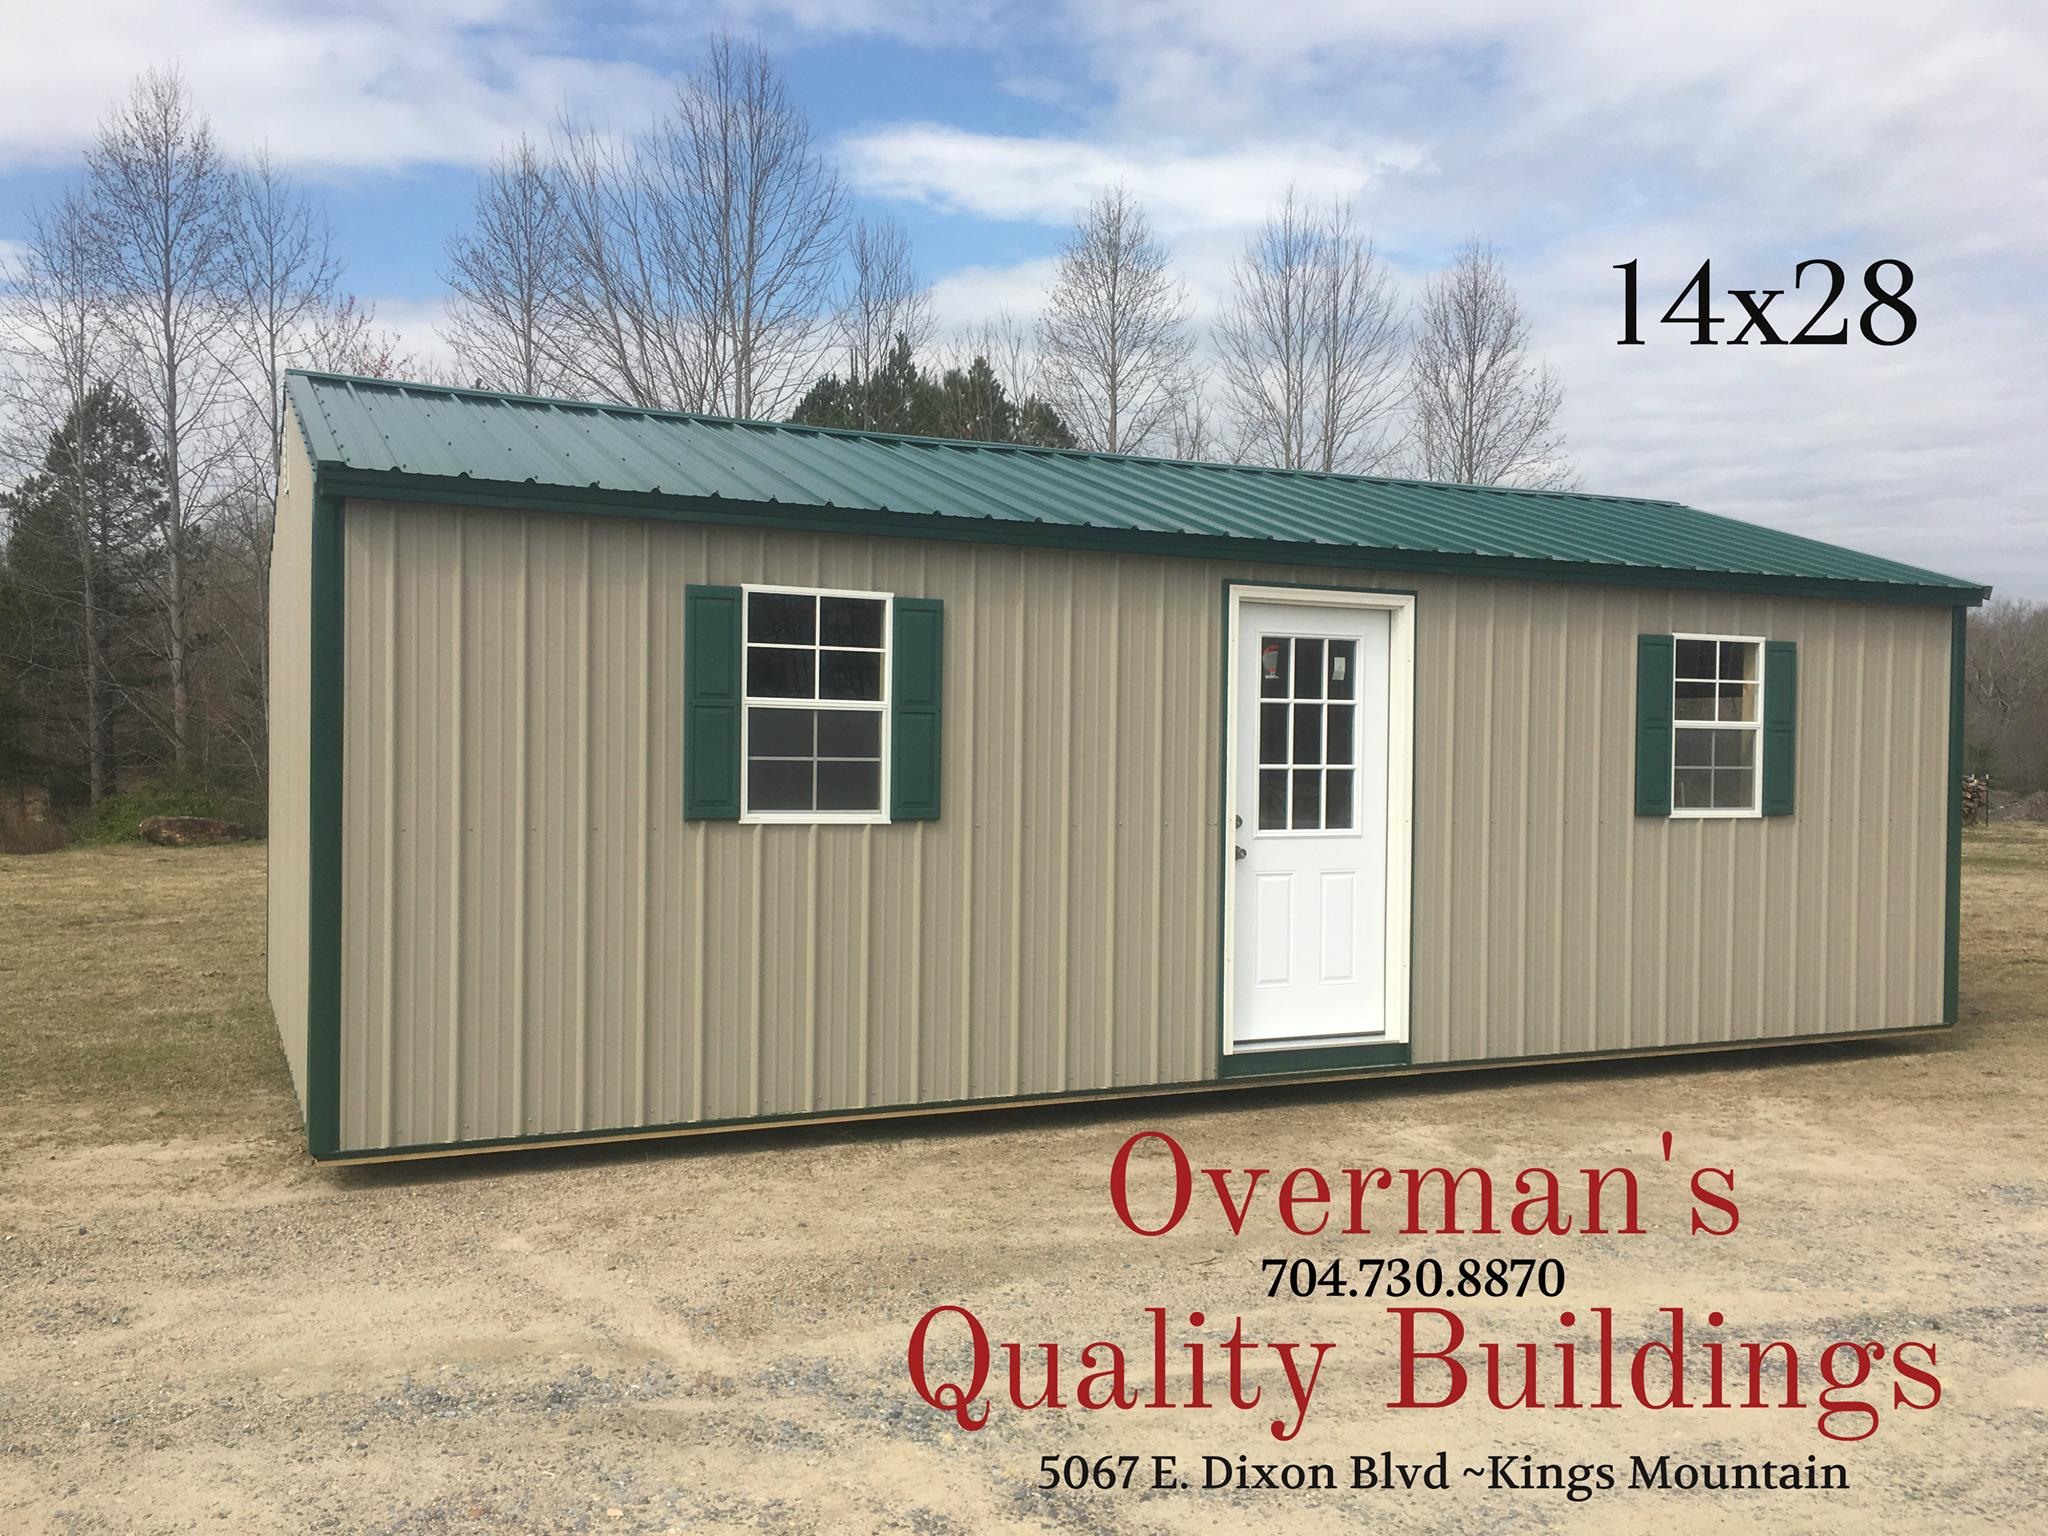 OVERMAN'S Quality Buildings